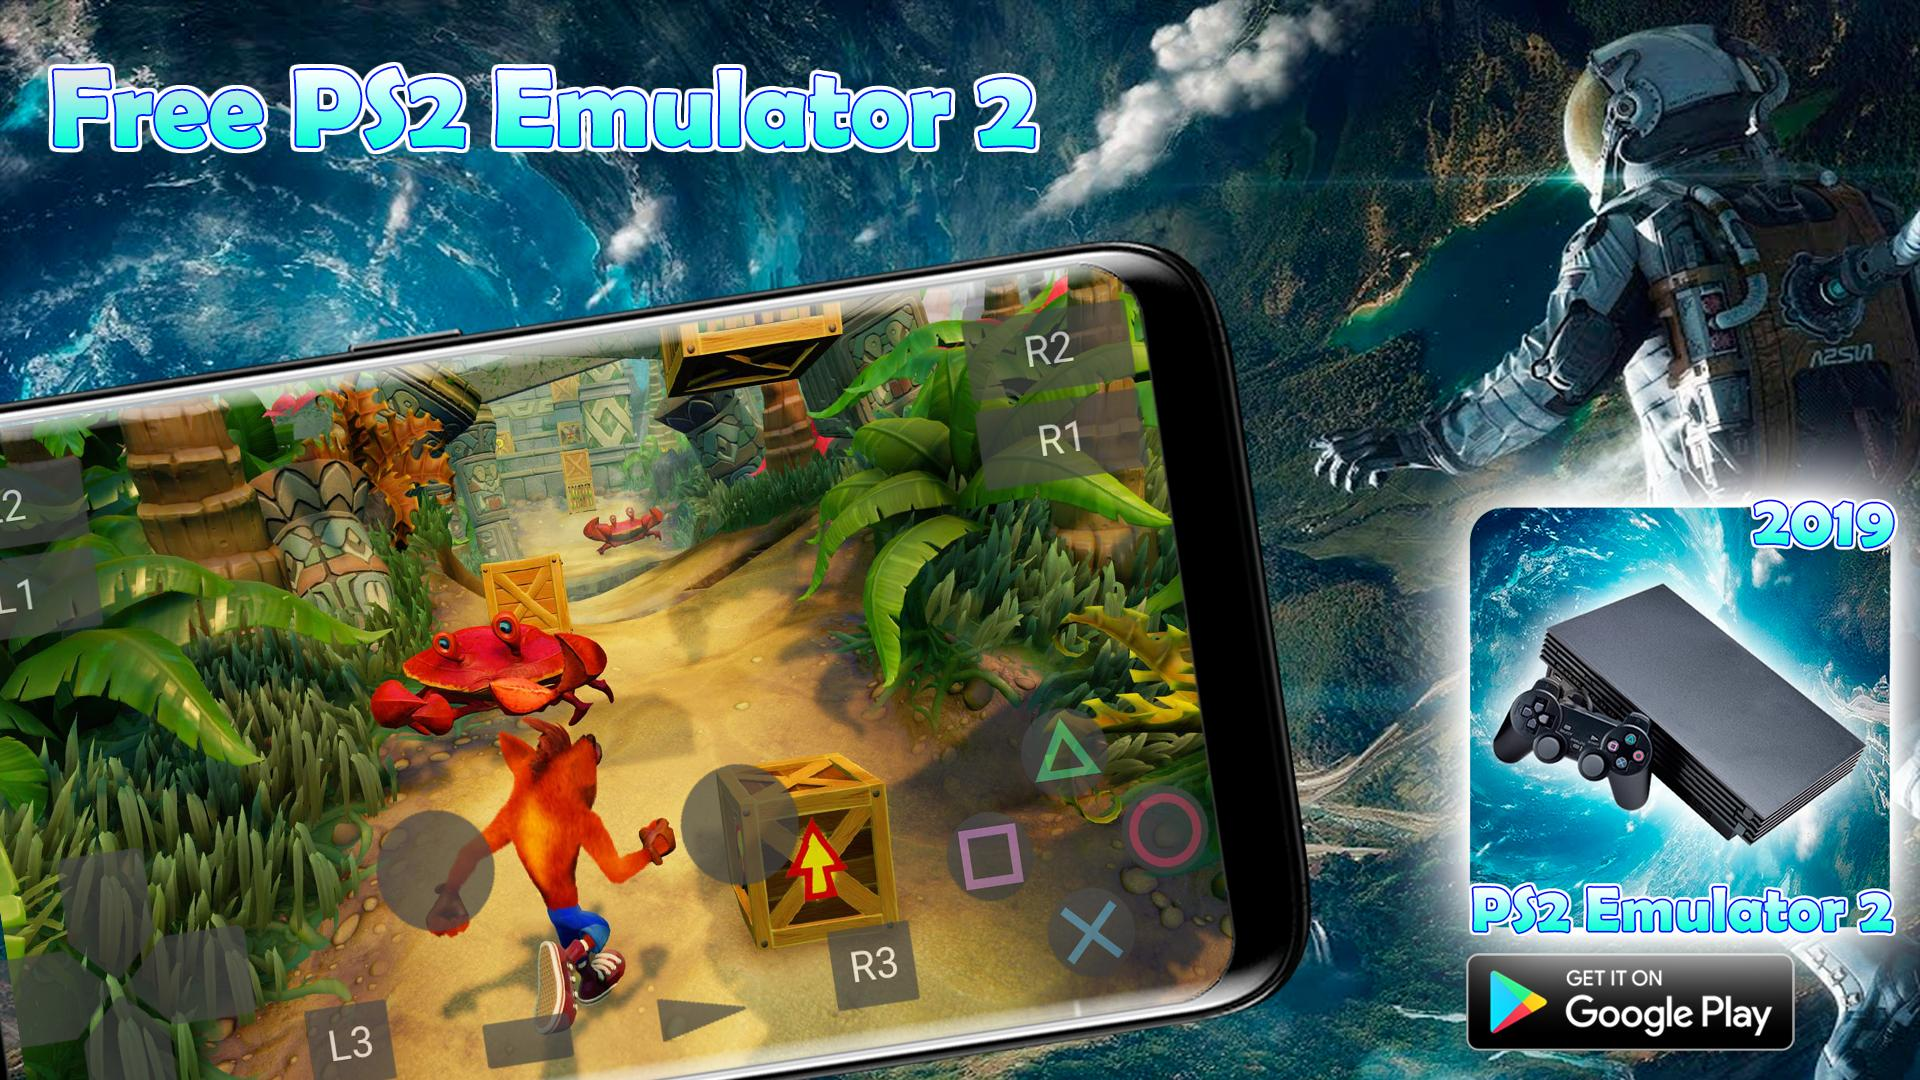 Free Pro PS2 Emulator 2 Games For Android 2019 for Android